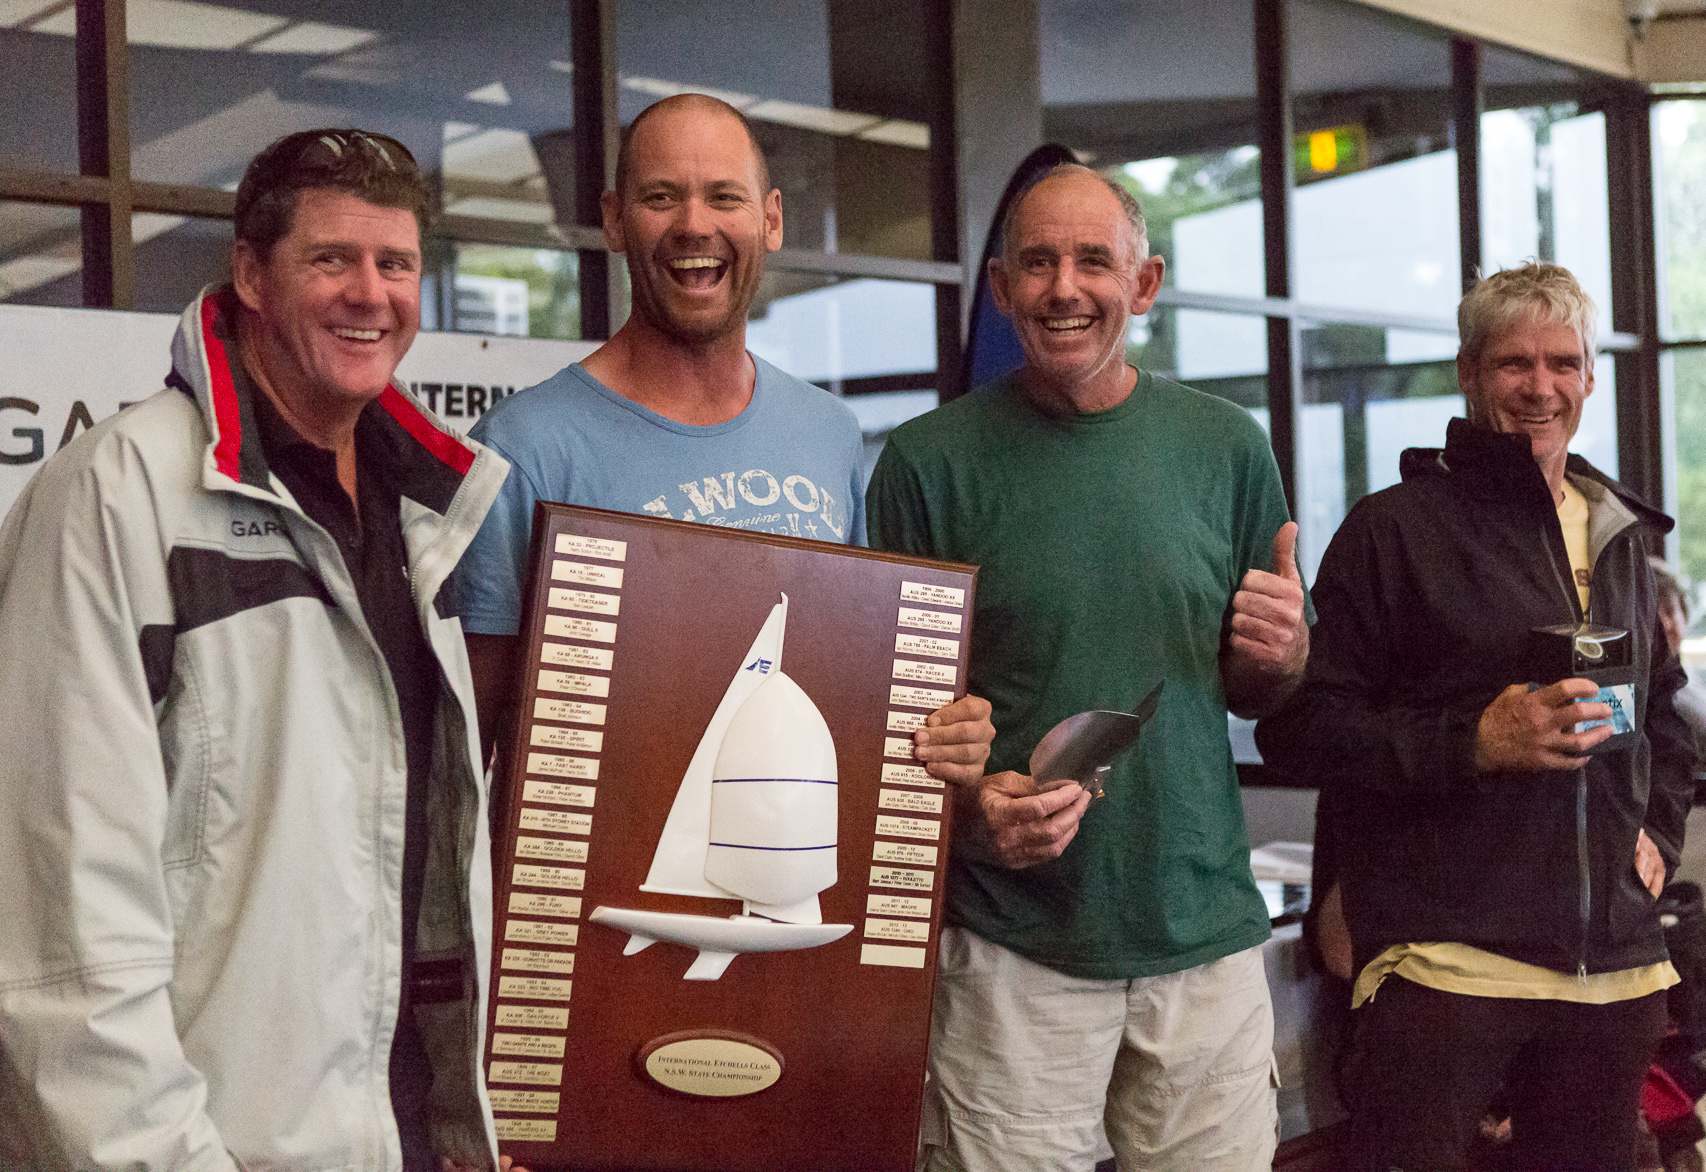 Winners are grinners - none more so than Graeme Taylor, Steve Jarvin and Grant Simmer as Garmin's Jason Browne presented them their loot